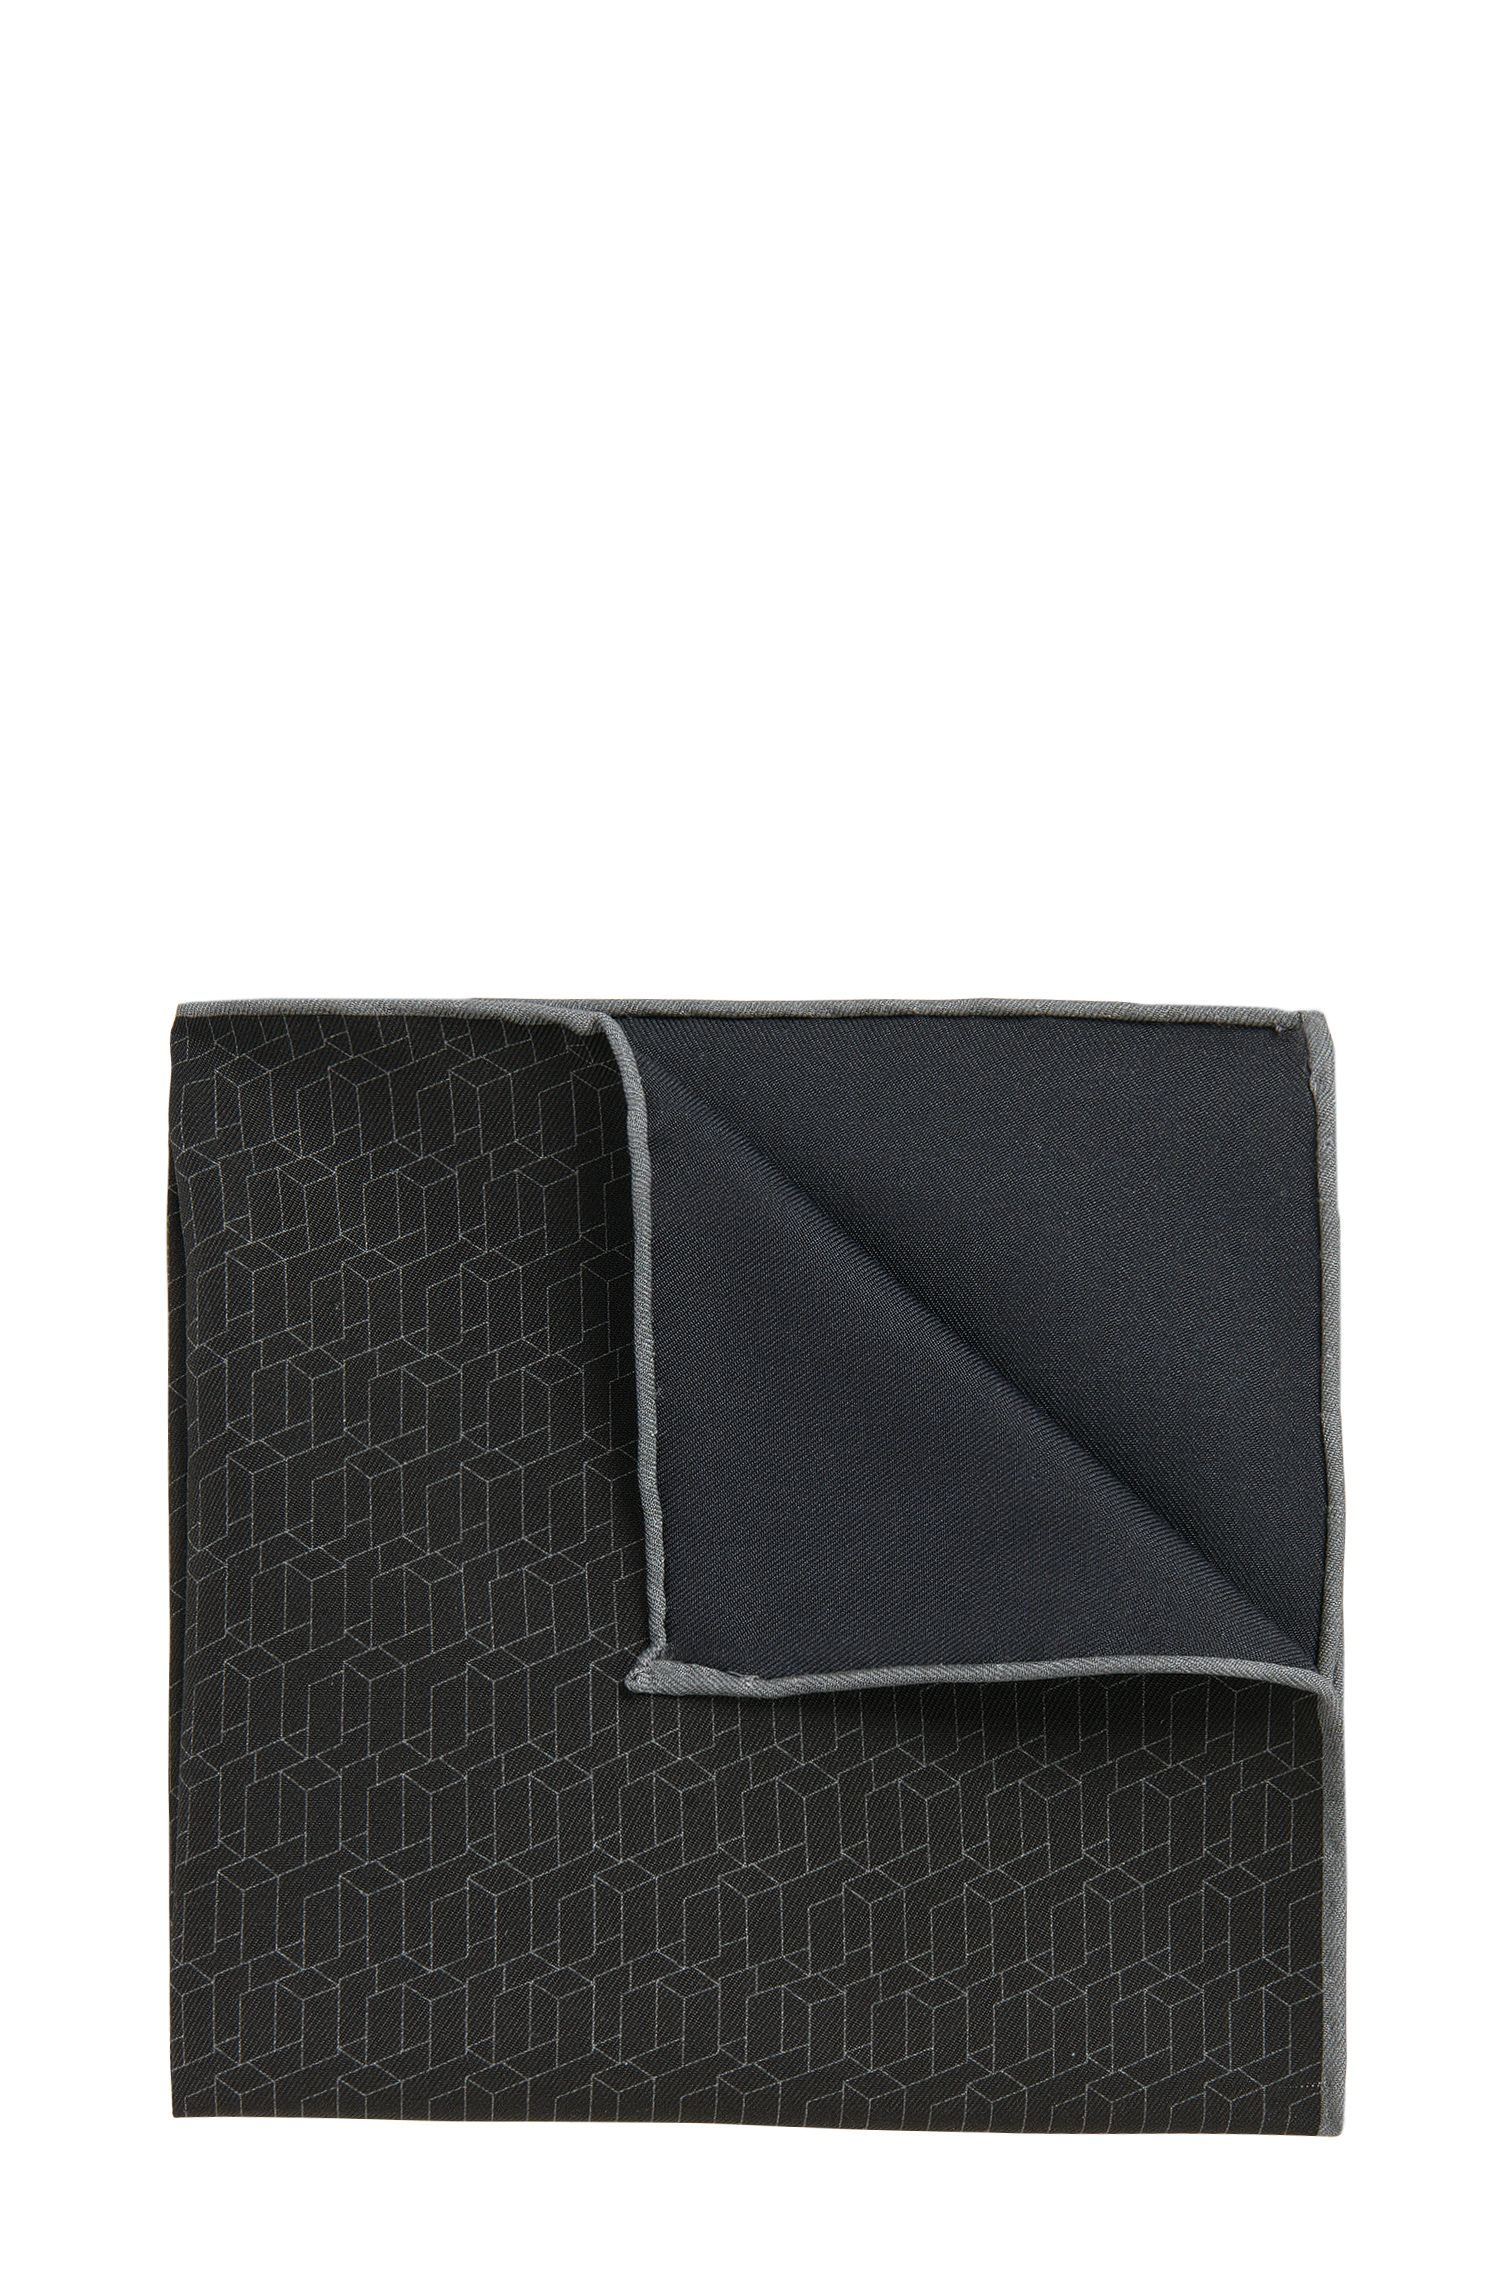 'T-Pocket sq. cm 33x33' | Italian Silk Cotton Pocket Square